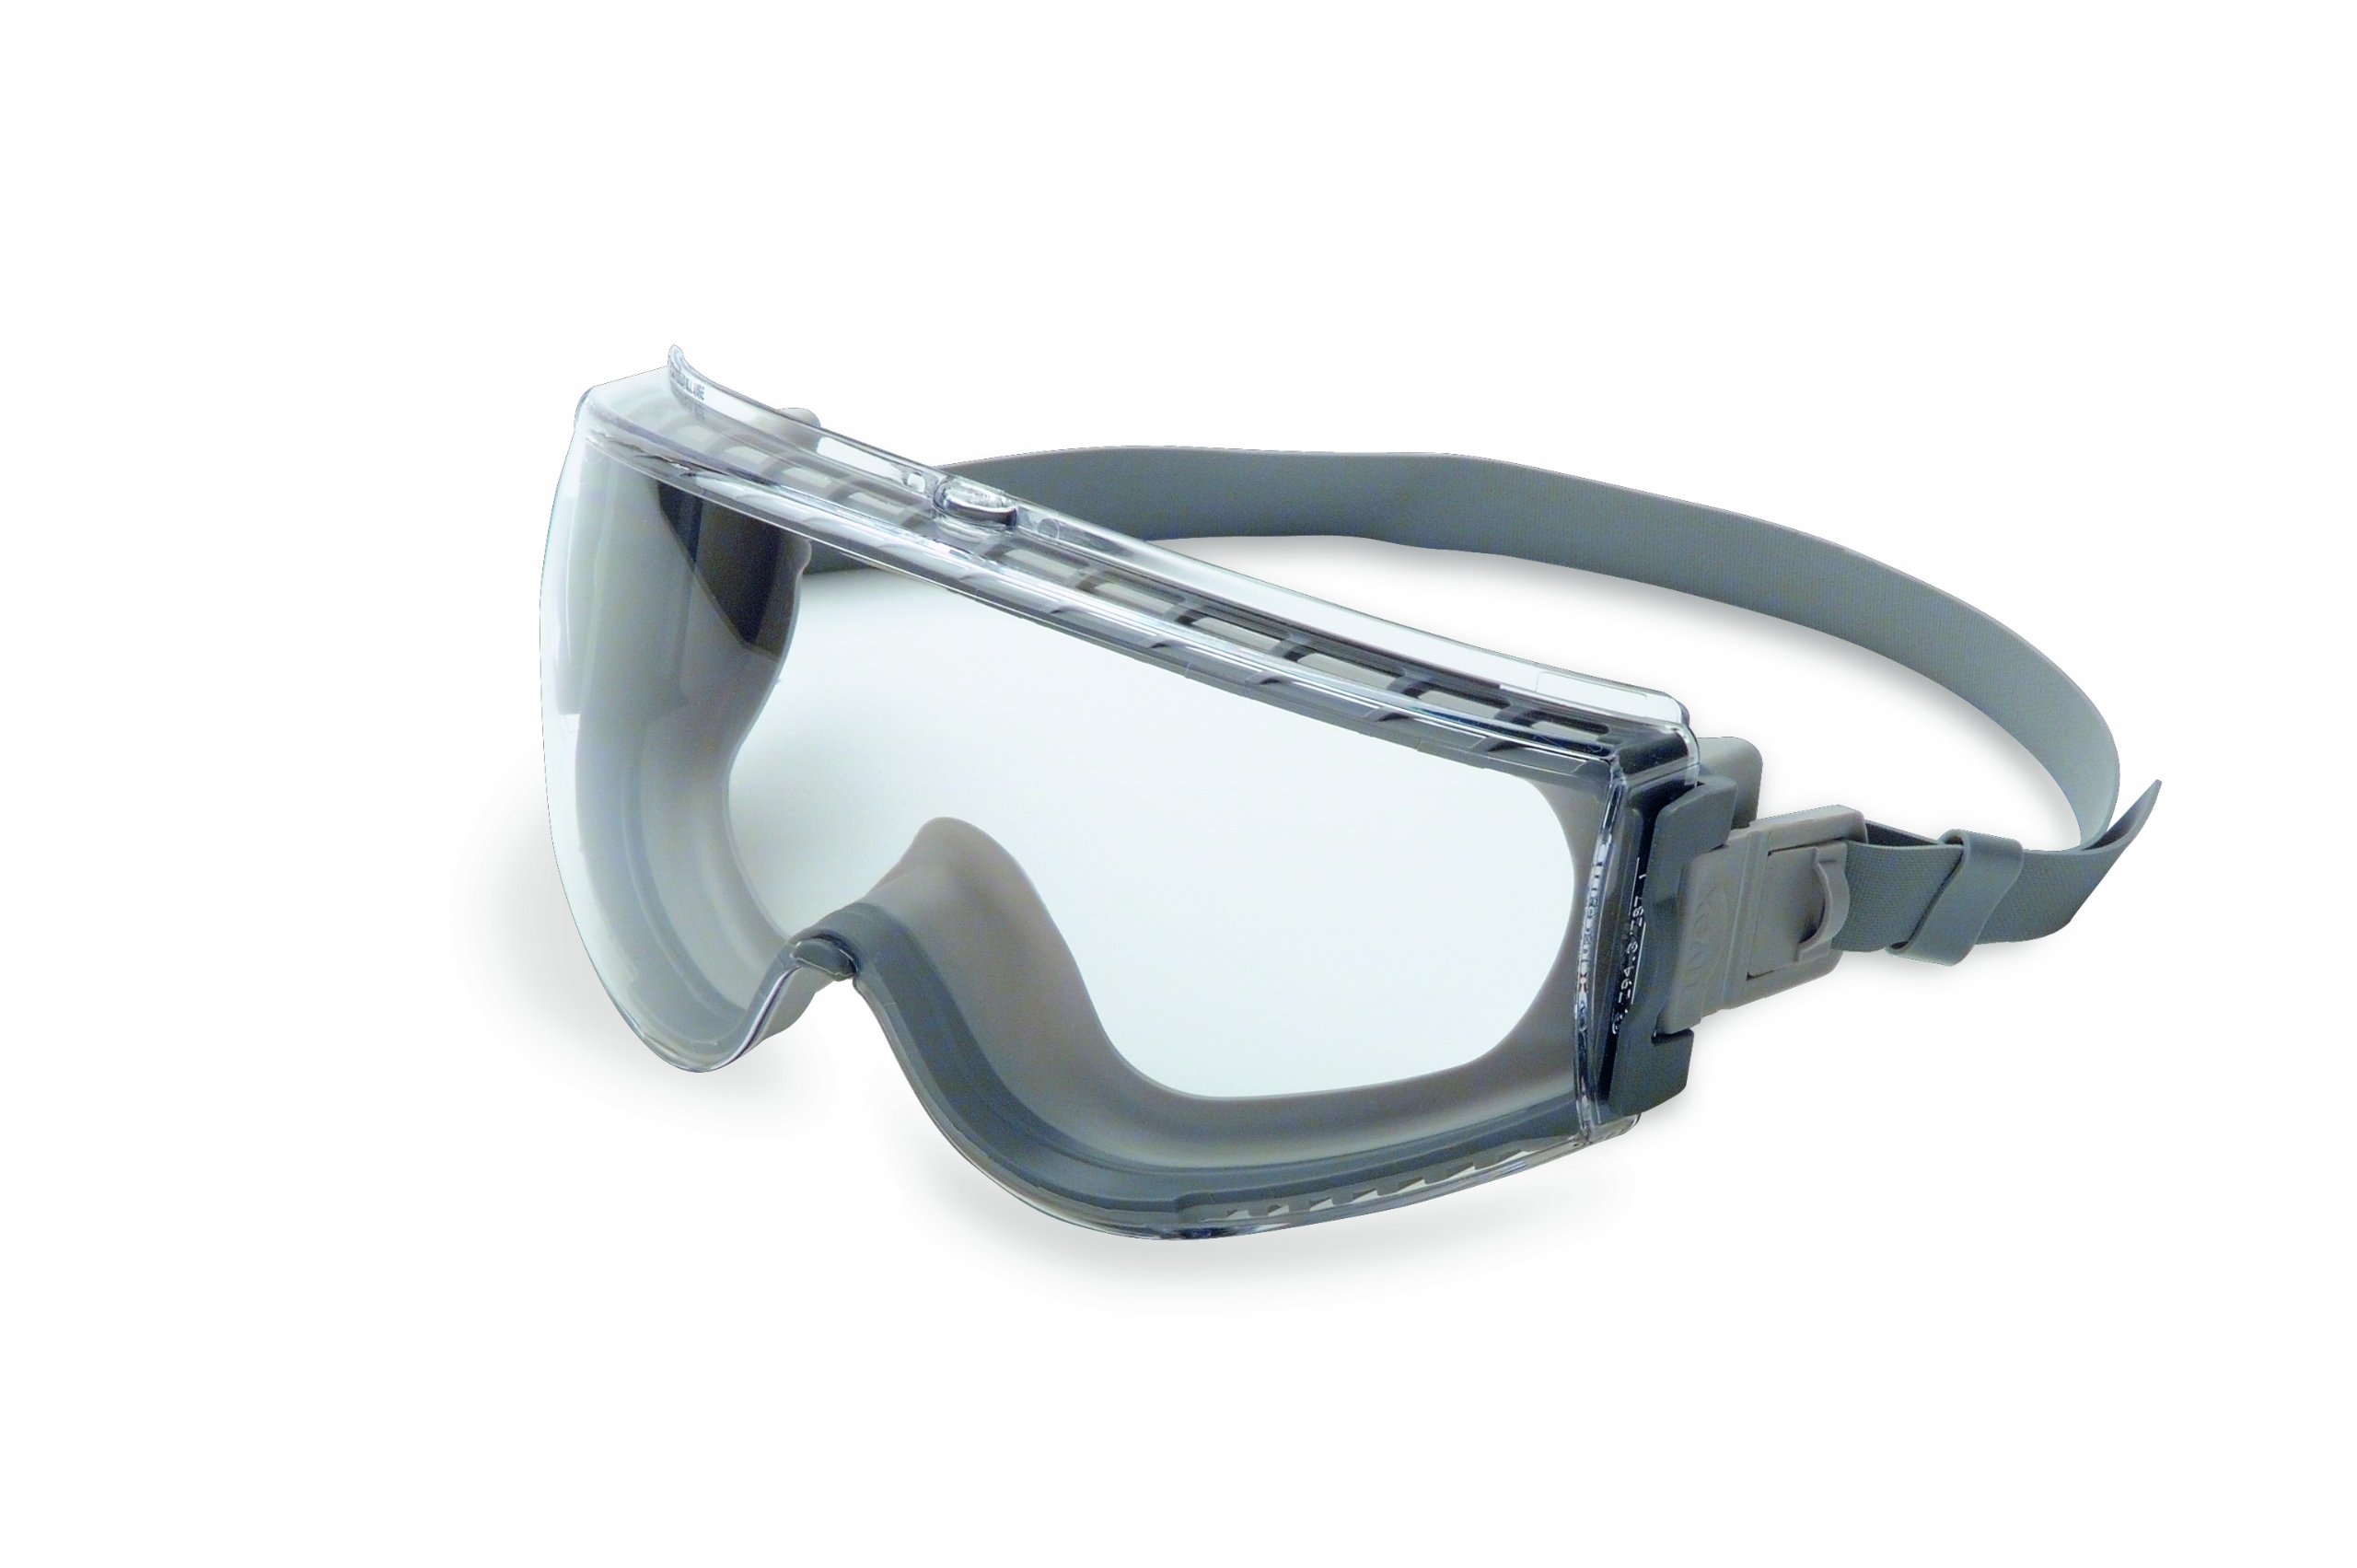 UVEX Stealth Safety Goggles with Clear Uvextreme Anti-Fog Lens, Gray Body & Neoprene Headband (S3960C), Universal